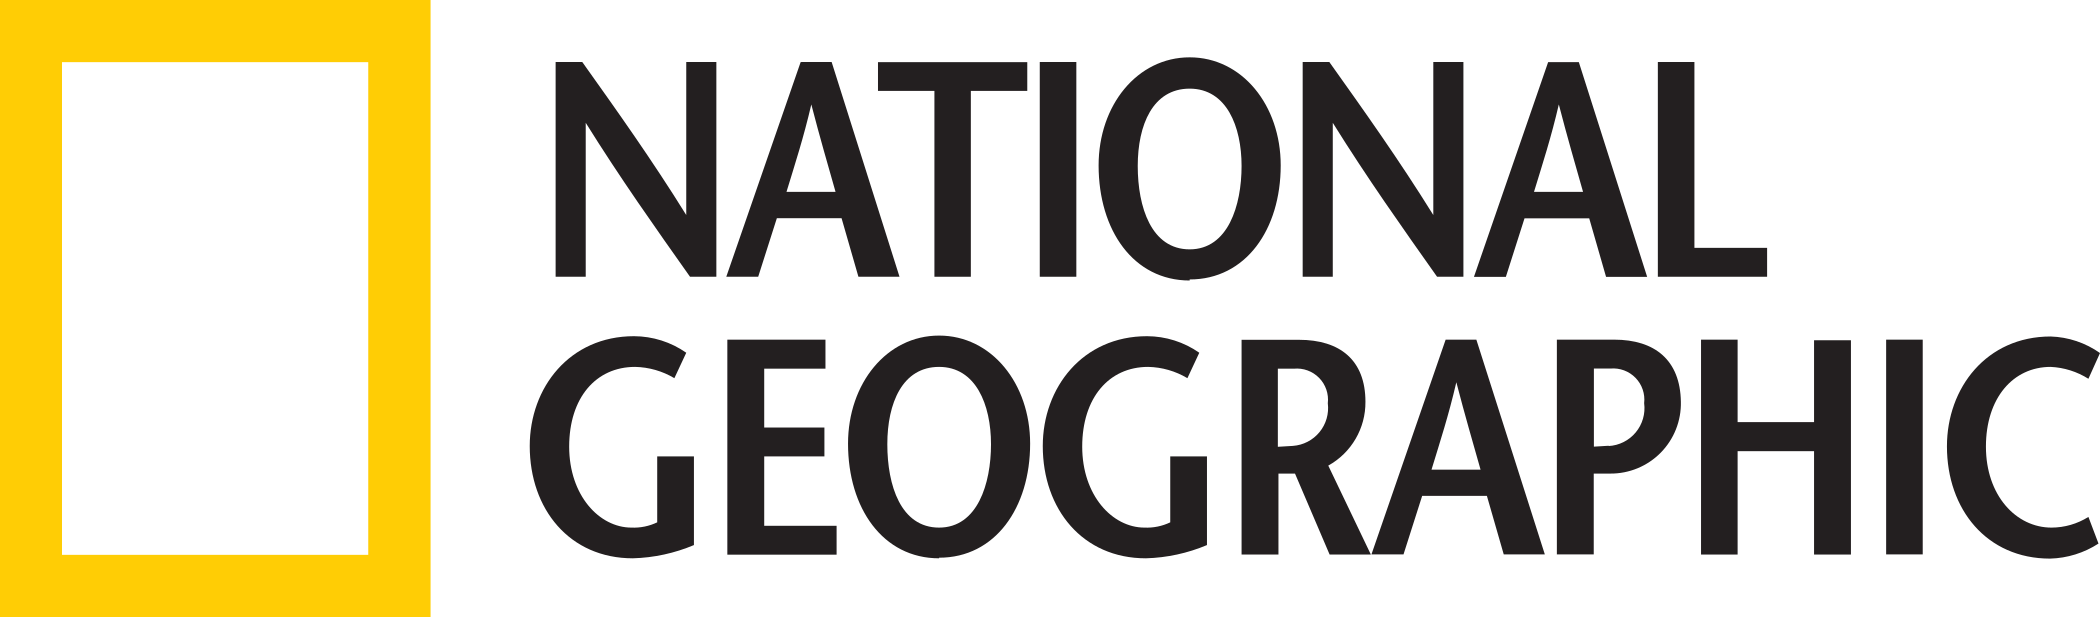 national geographic logo 1 - National Geographic Logo